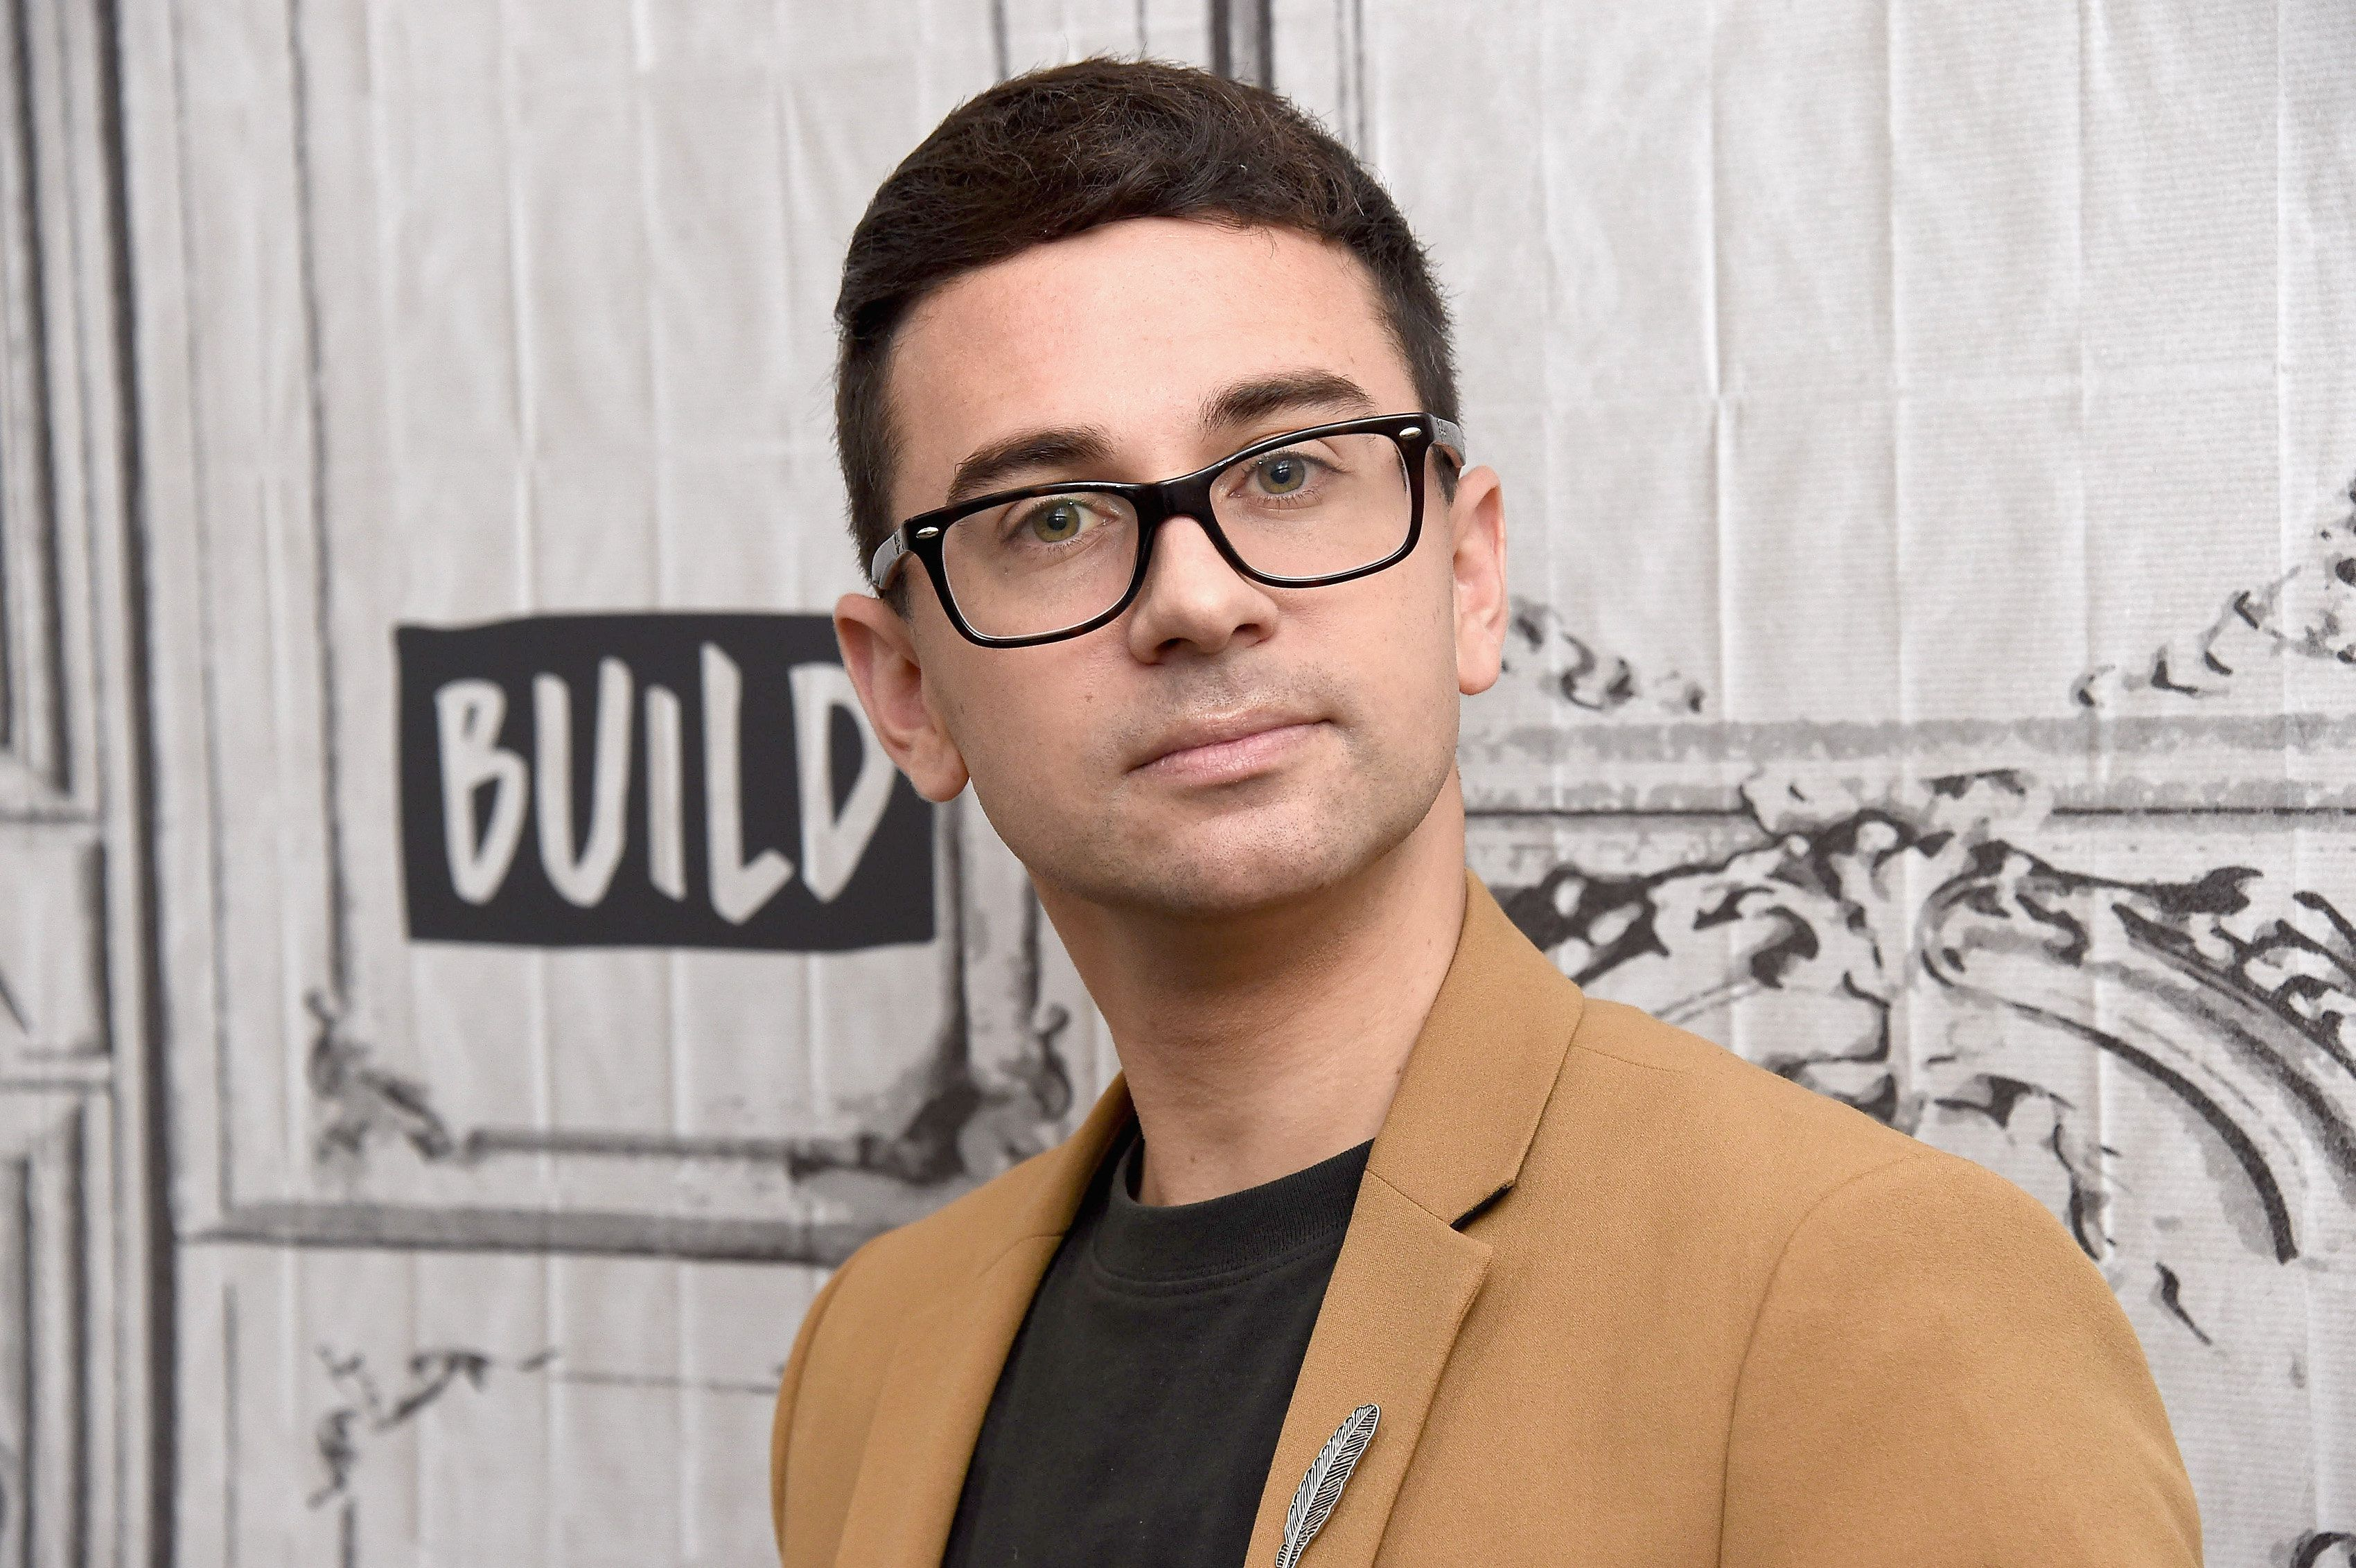 NEW YORK, NY - OCTOBER 02:  Fashion designer Christian Siriano visits Build Series to discuss the 'Check Your Sweat' campaign at Build Studio on October 2, 2018 in New York City.  (Photo by Gary Gershoff/WireImage)